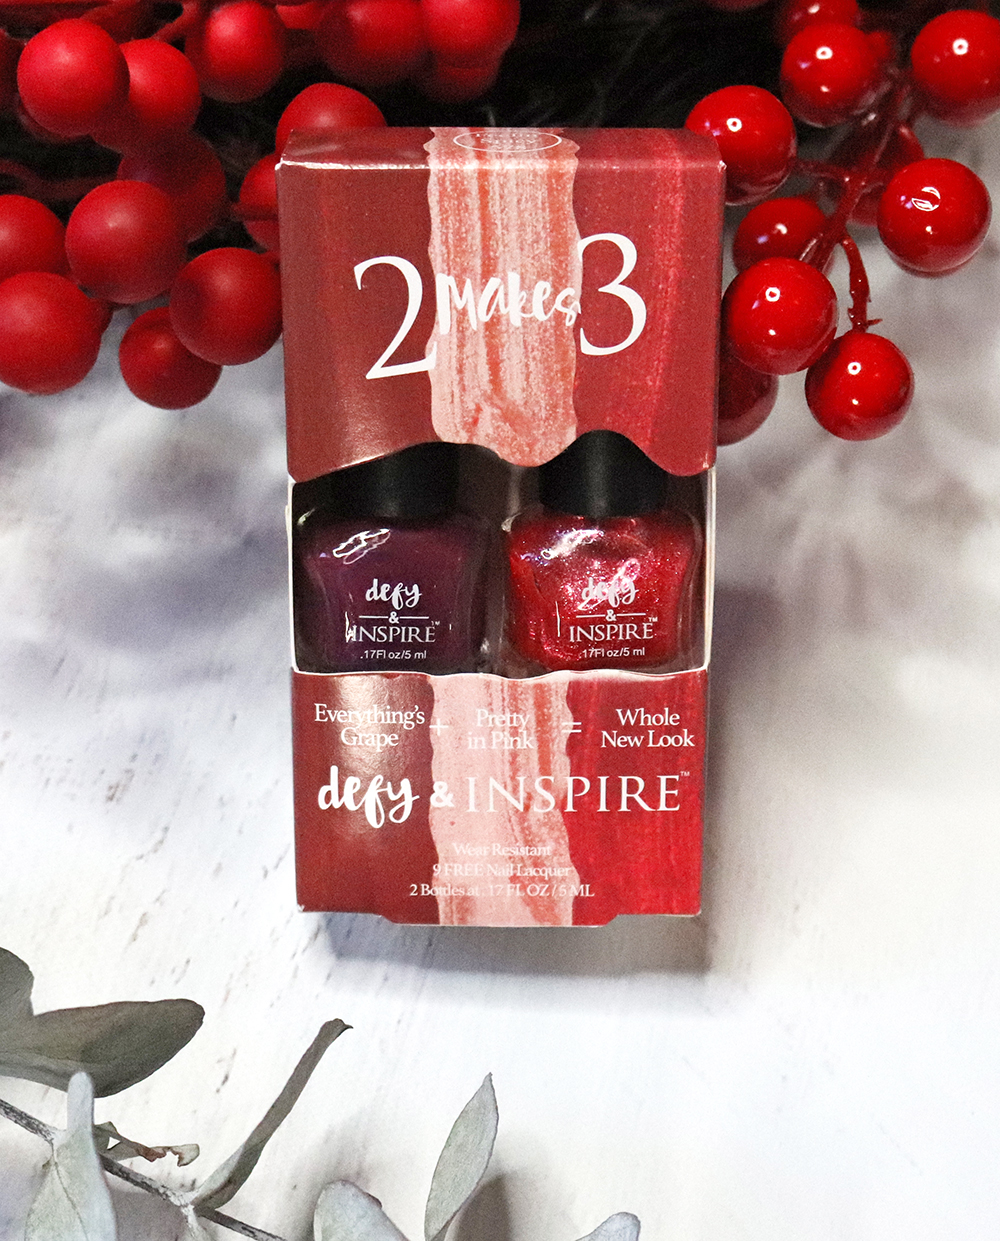 Cruelty Free Holiday Gift Guide 2020 - Defy & Inspire 2 Makes 3 gift set